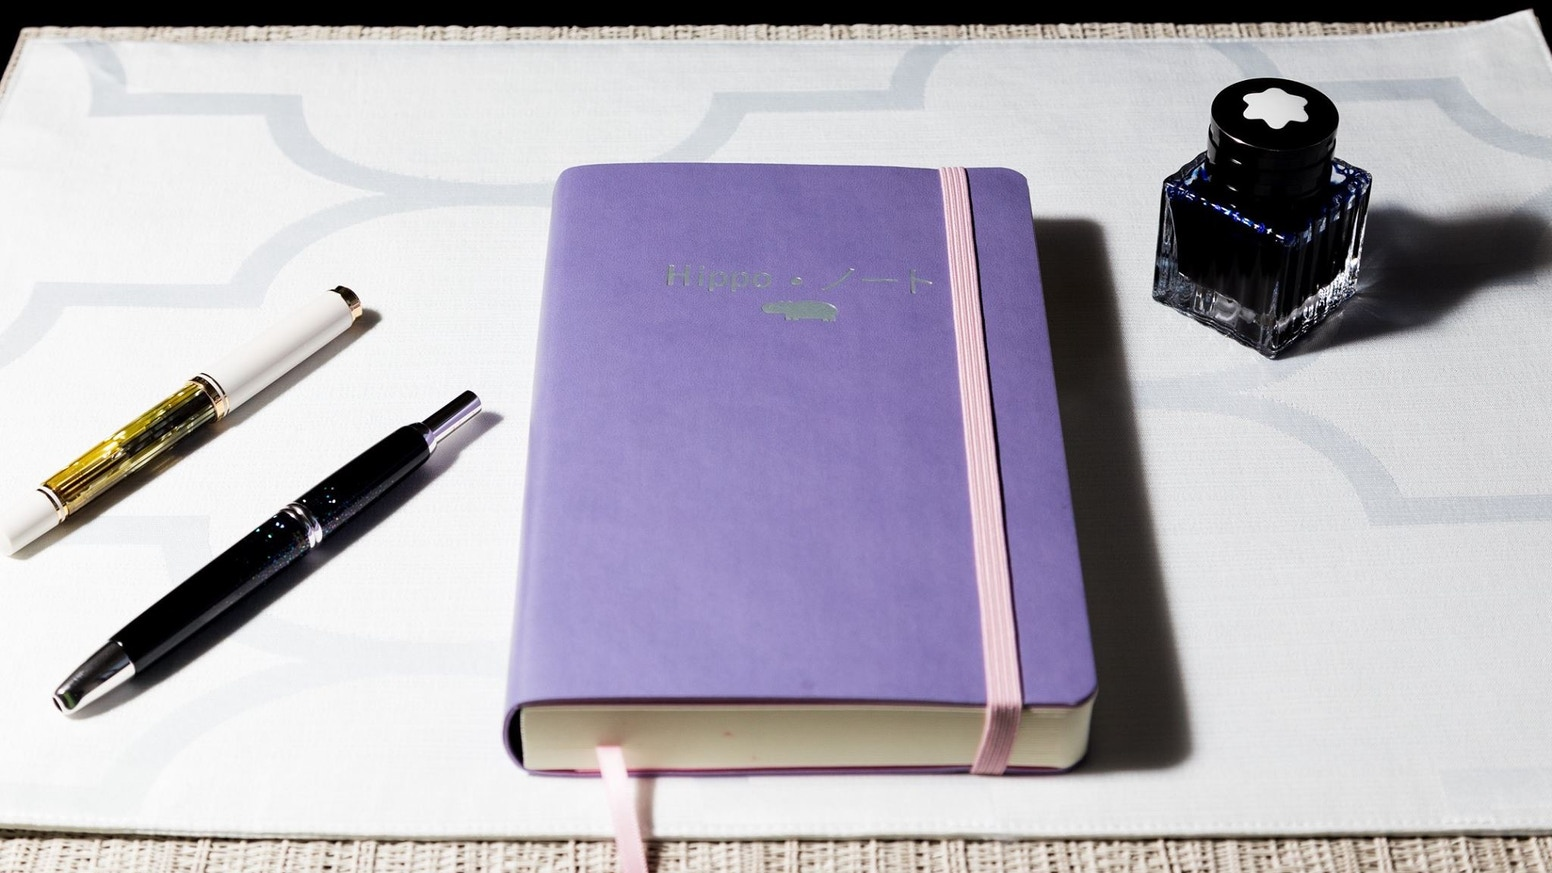 Creating a notebook that brings out the magic in ink.